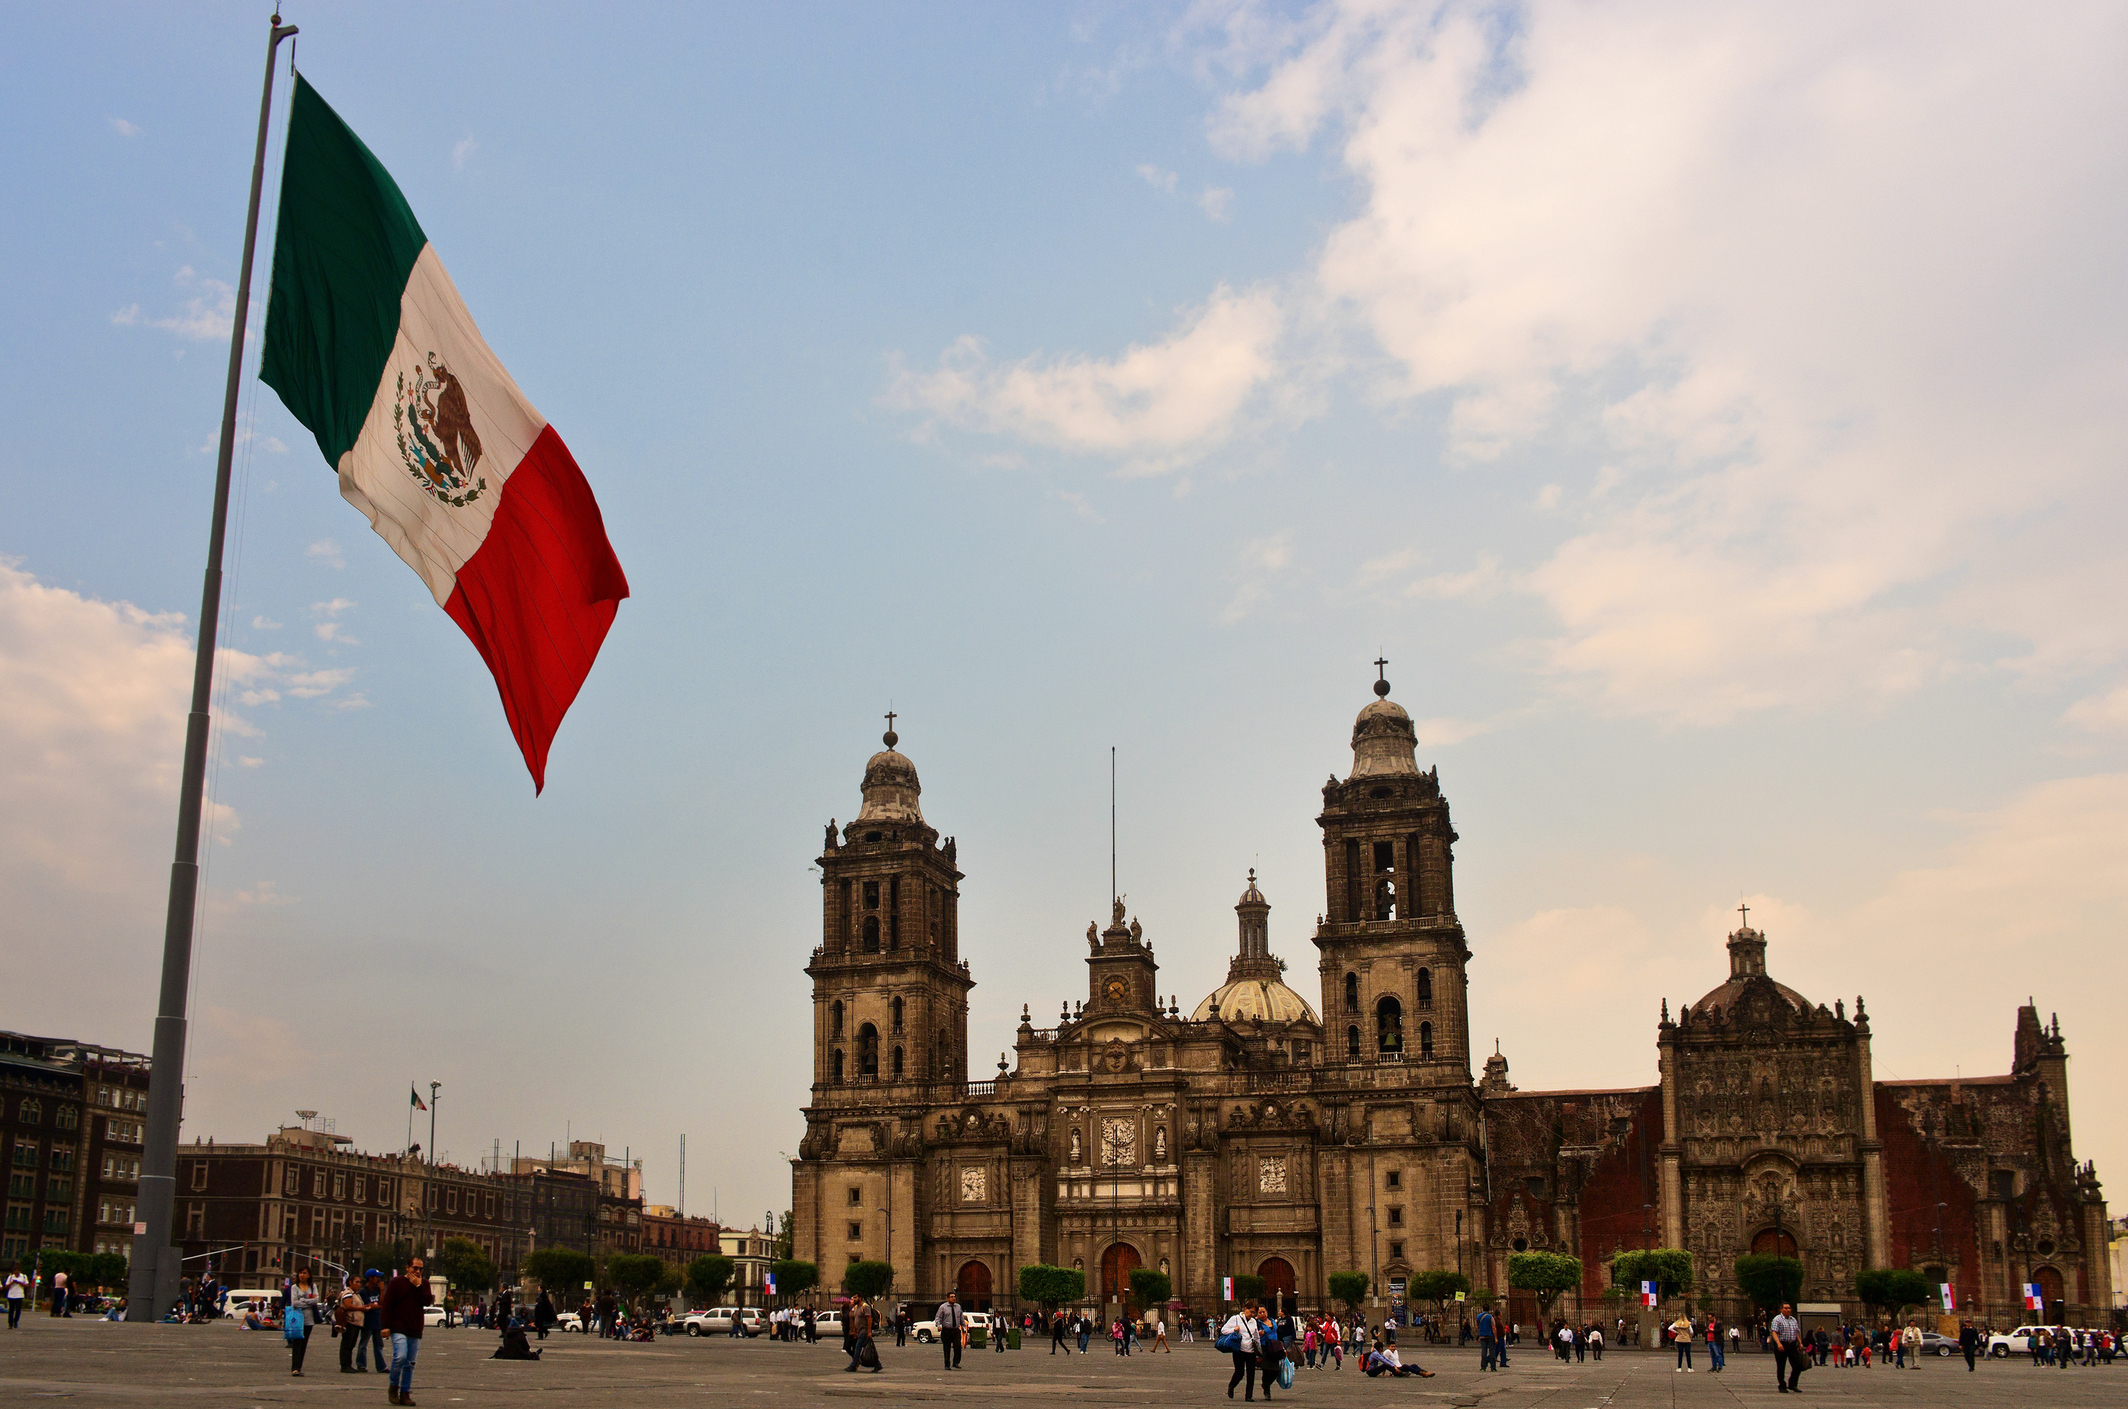 Zocalo, Mexico City (Getty Images)